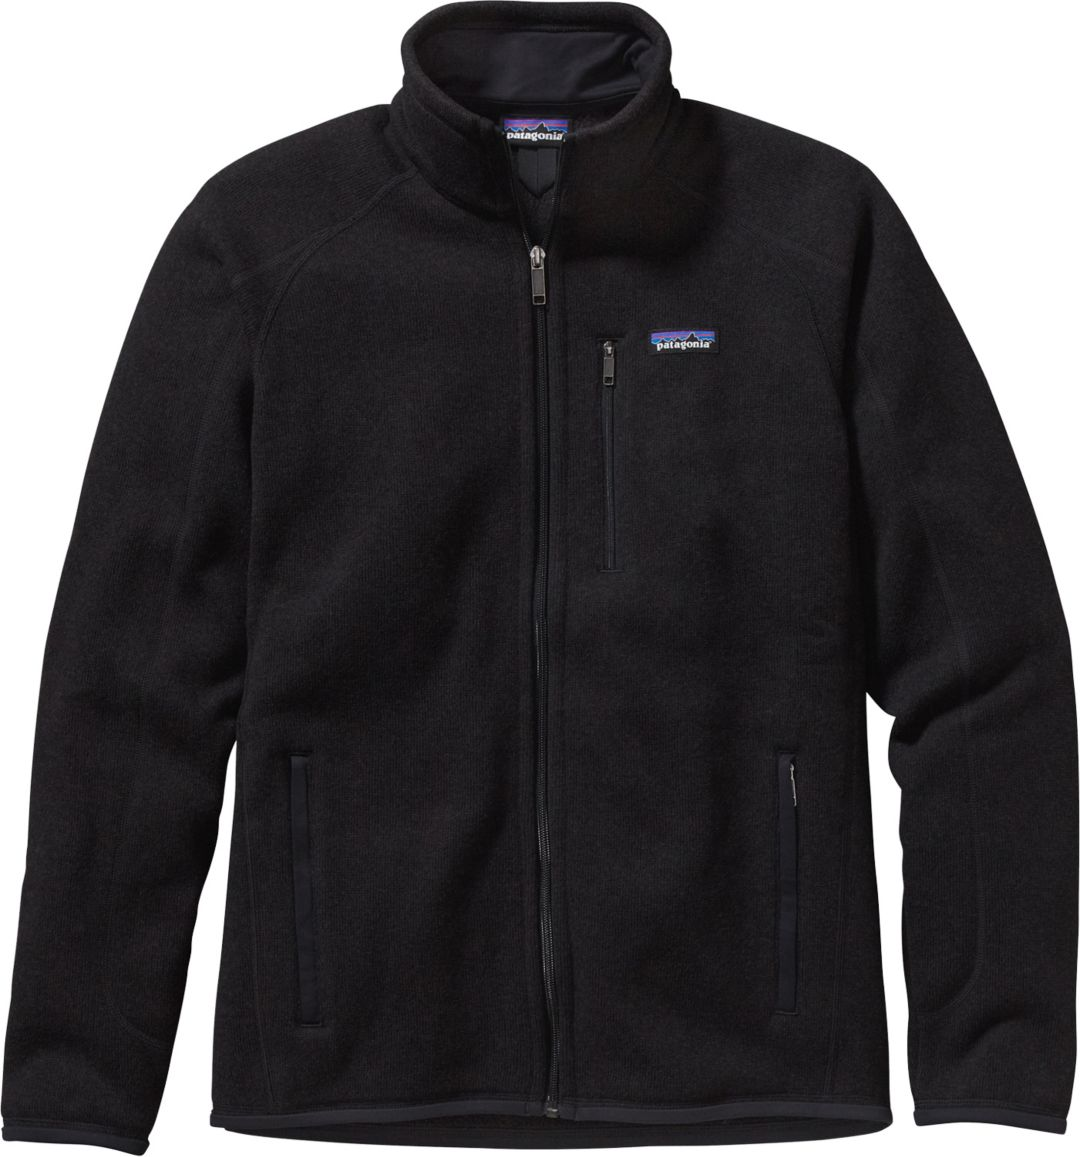 7a90af5916ee95 Patagonia Men's Better Sweater | Best Price Guarantee at DICK'S